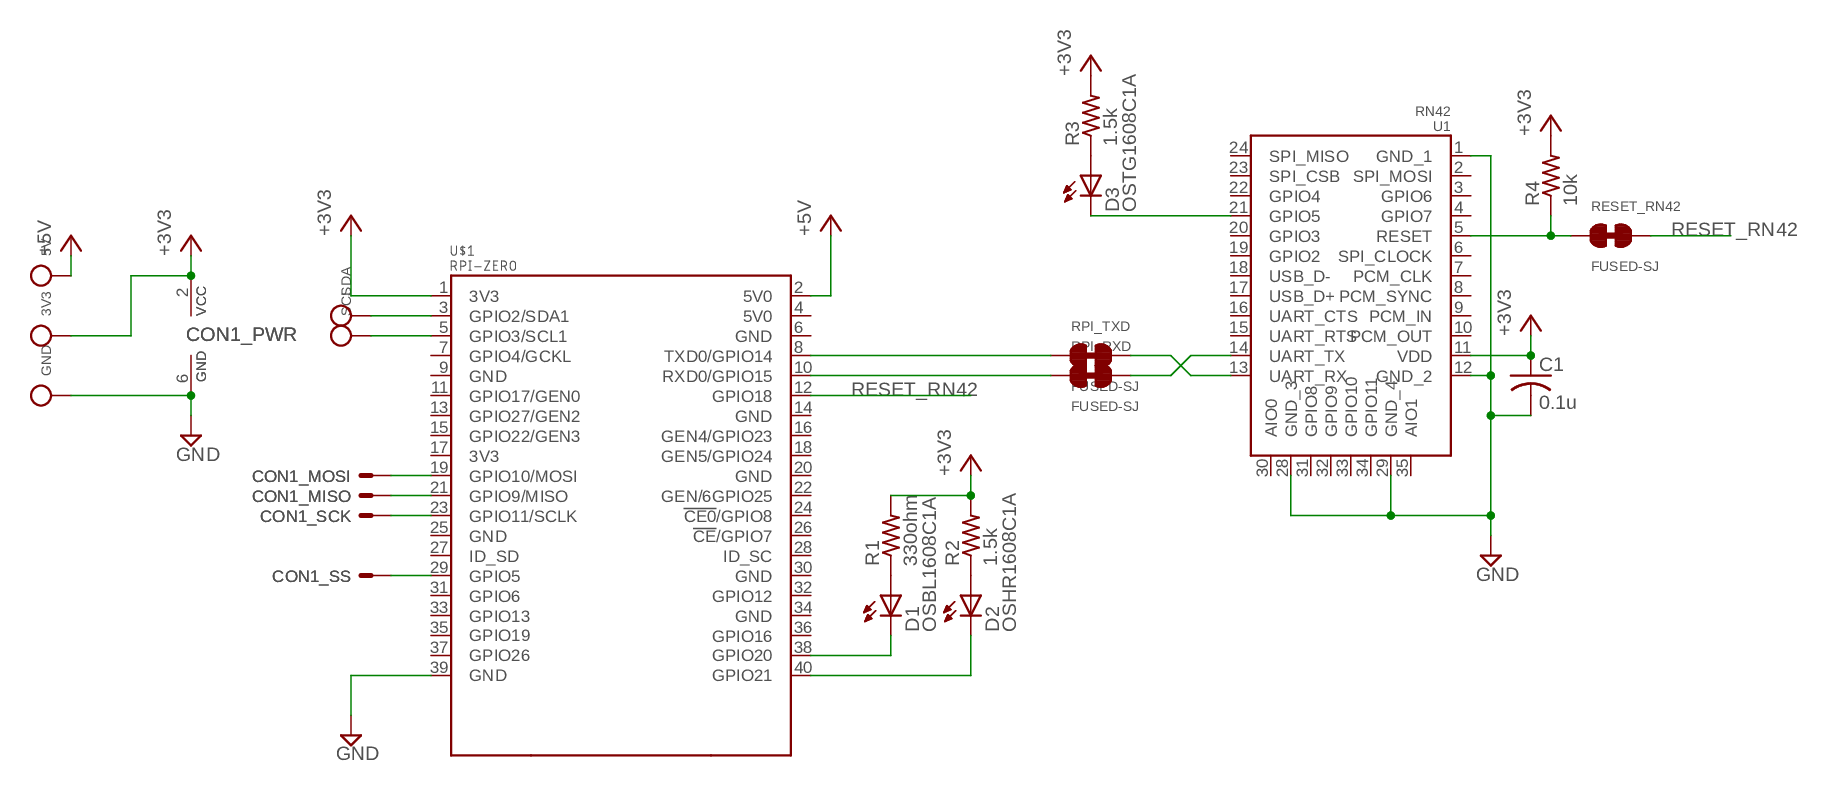 https://raw.githubusercontent.com/google/mozc-devices/master/mozc-nazoru/board/schematic.png